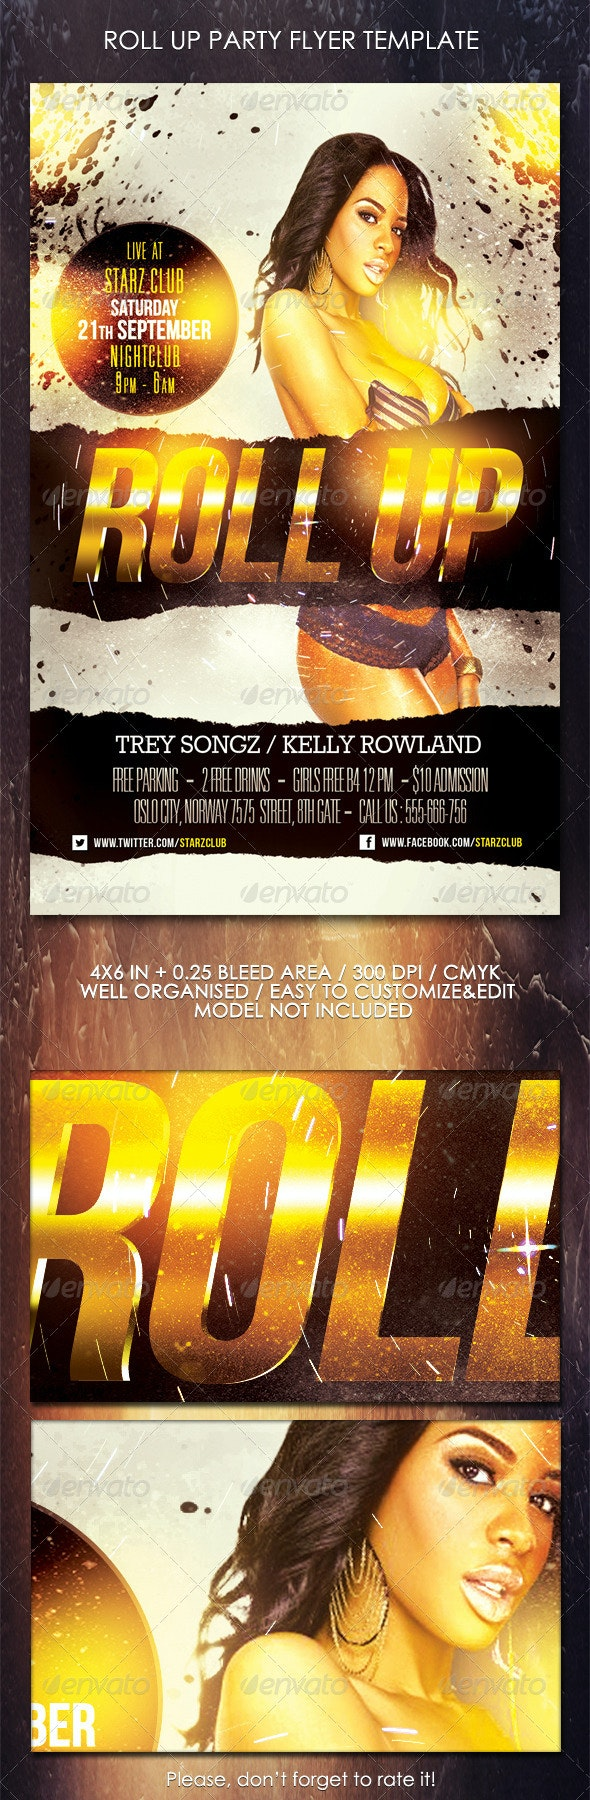 Roll Up Party Flyer Template - Clubs & Parties Events